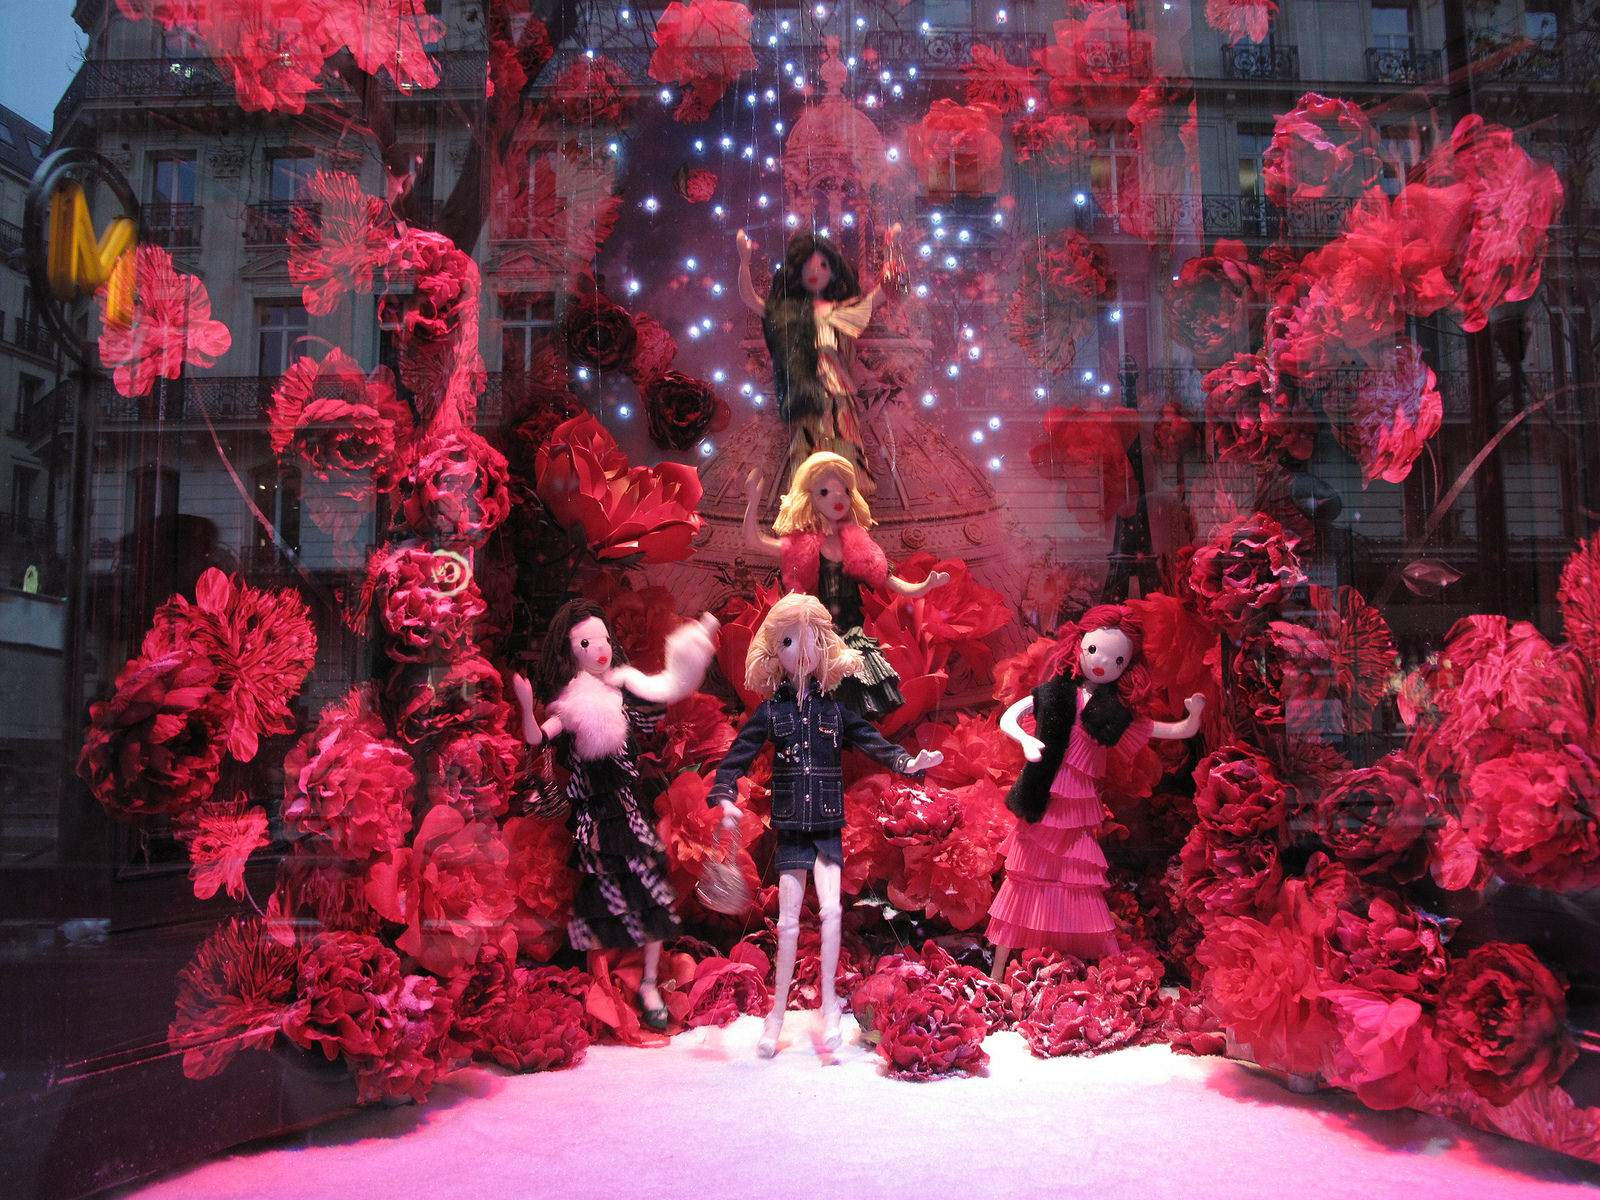 vitrines noel8 Christmas window displays in Paris